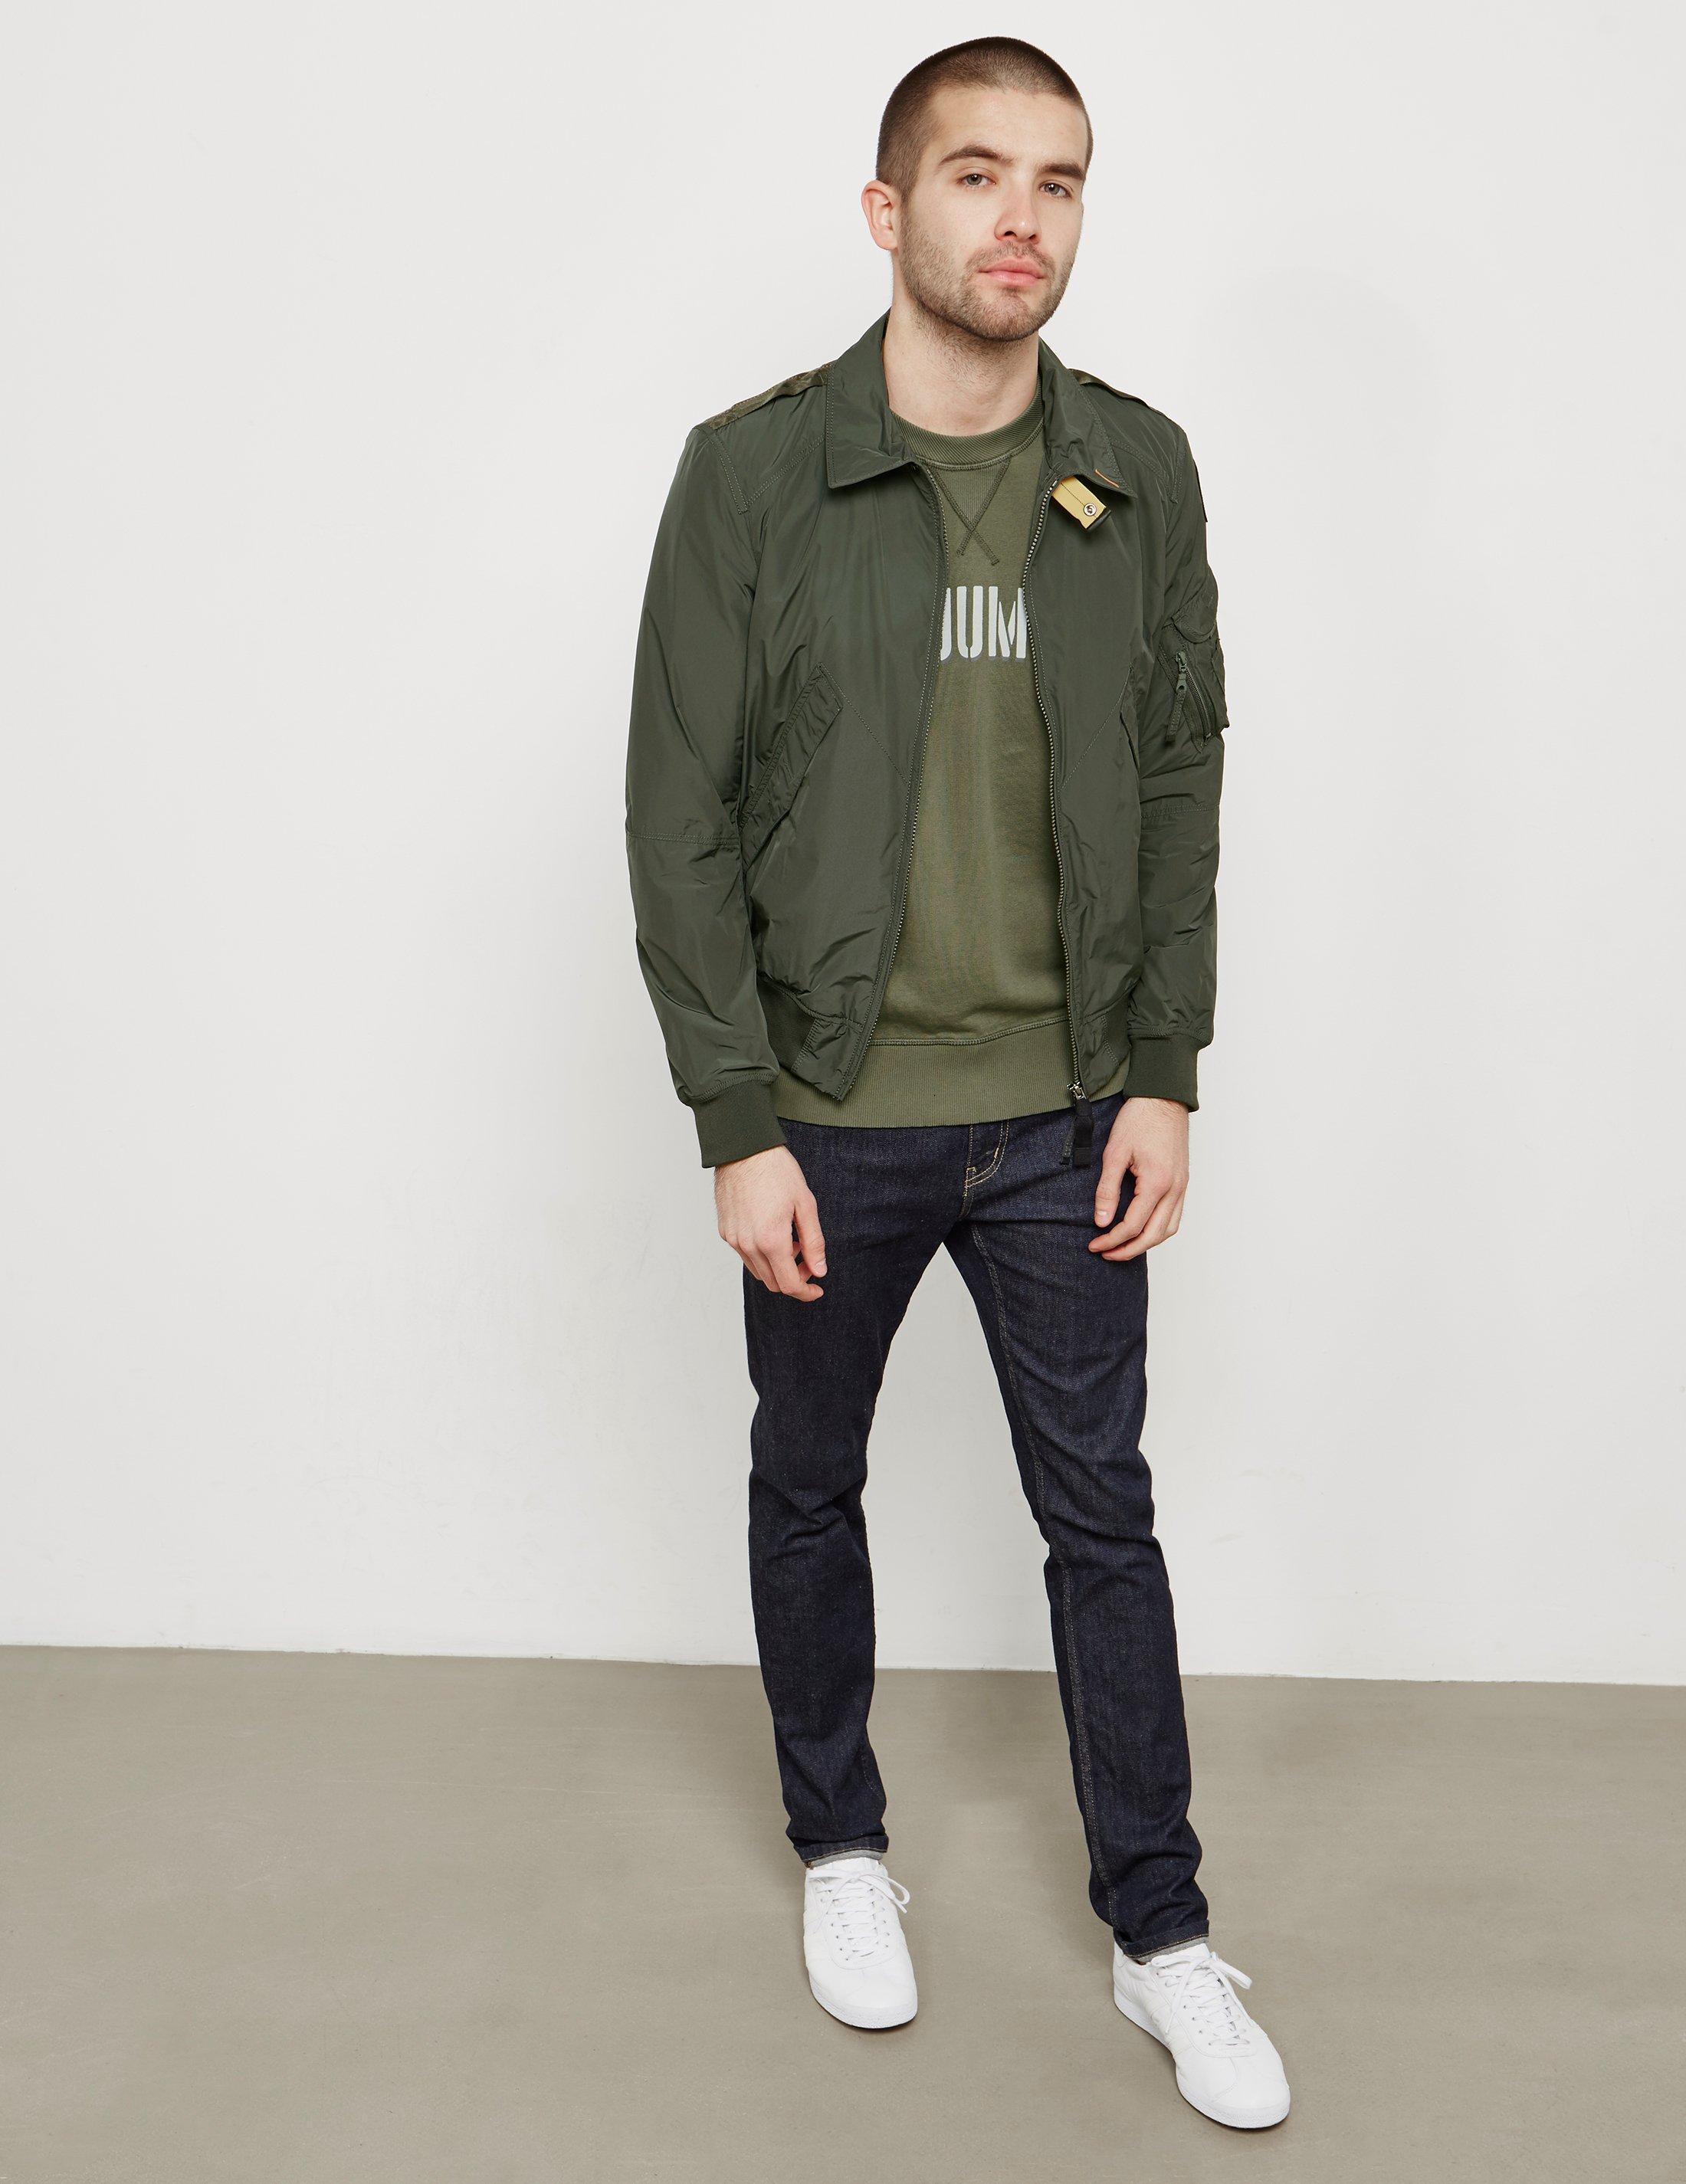 Lyst - Parajumpers Mens Brigadier Bomber Jacket Green in Green for Men - Save 5.140186915887853%